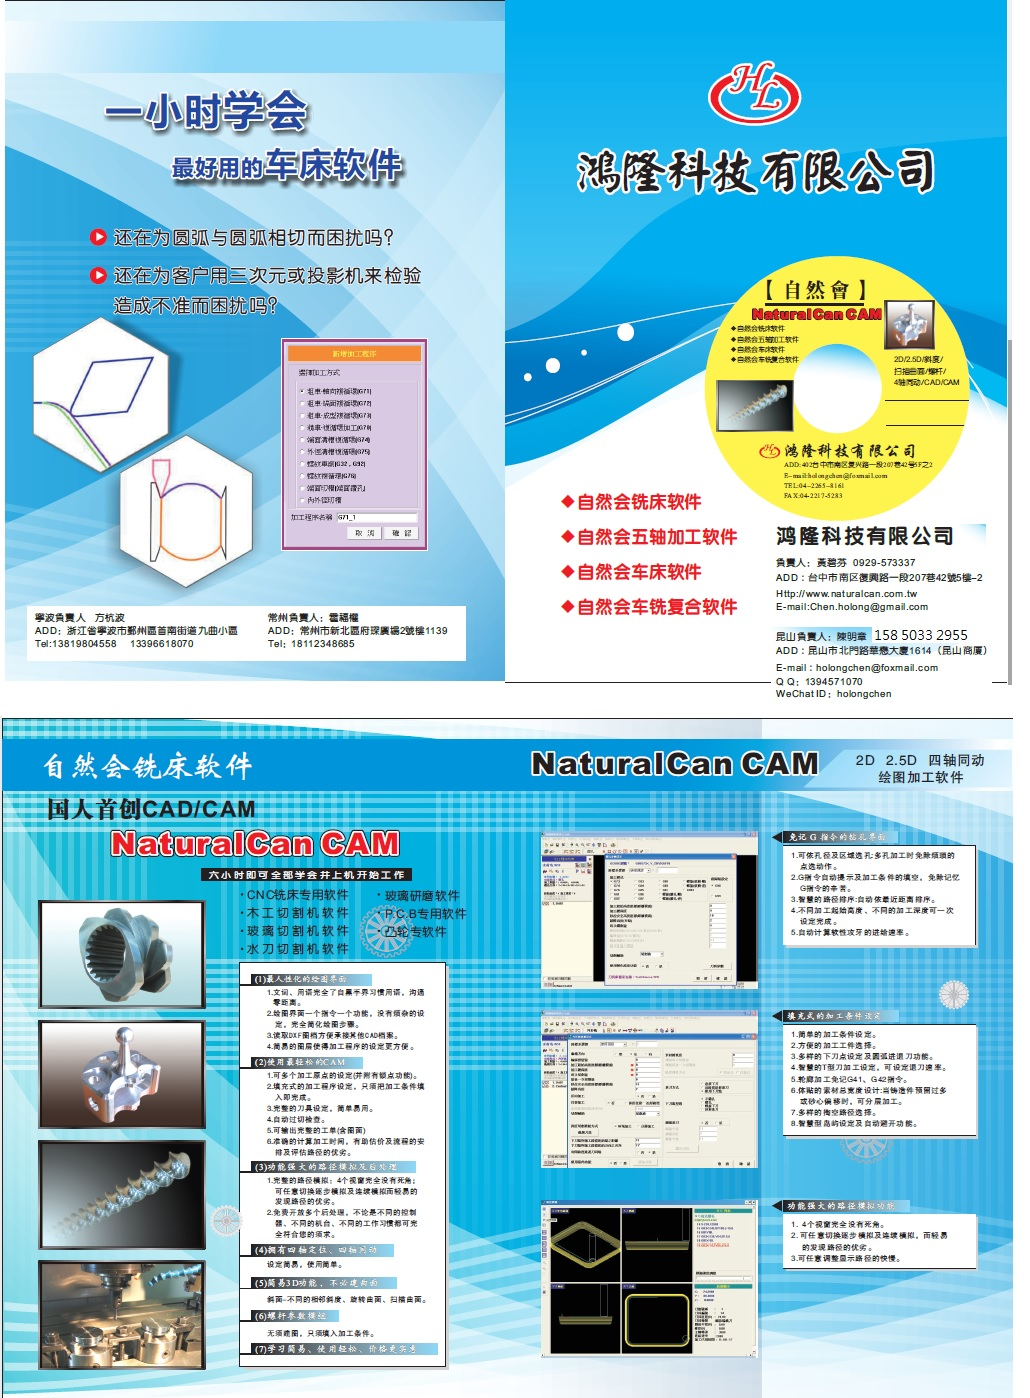 honglong technology co., LTD.